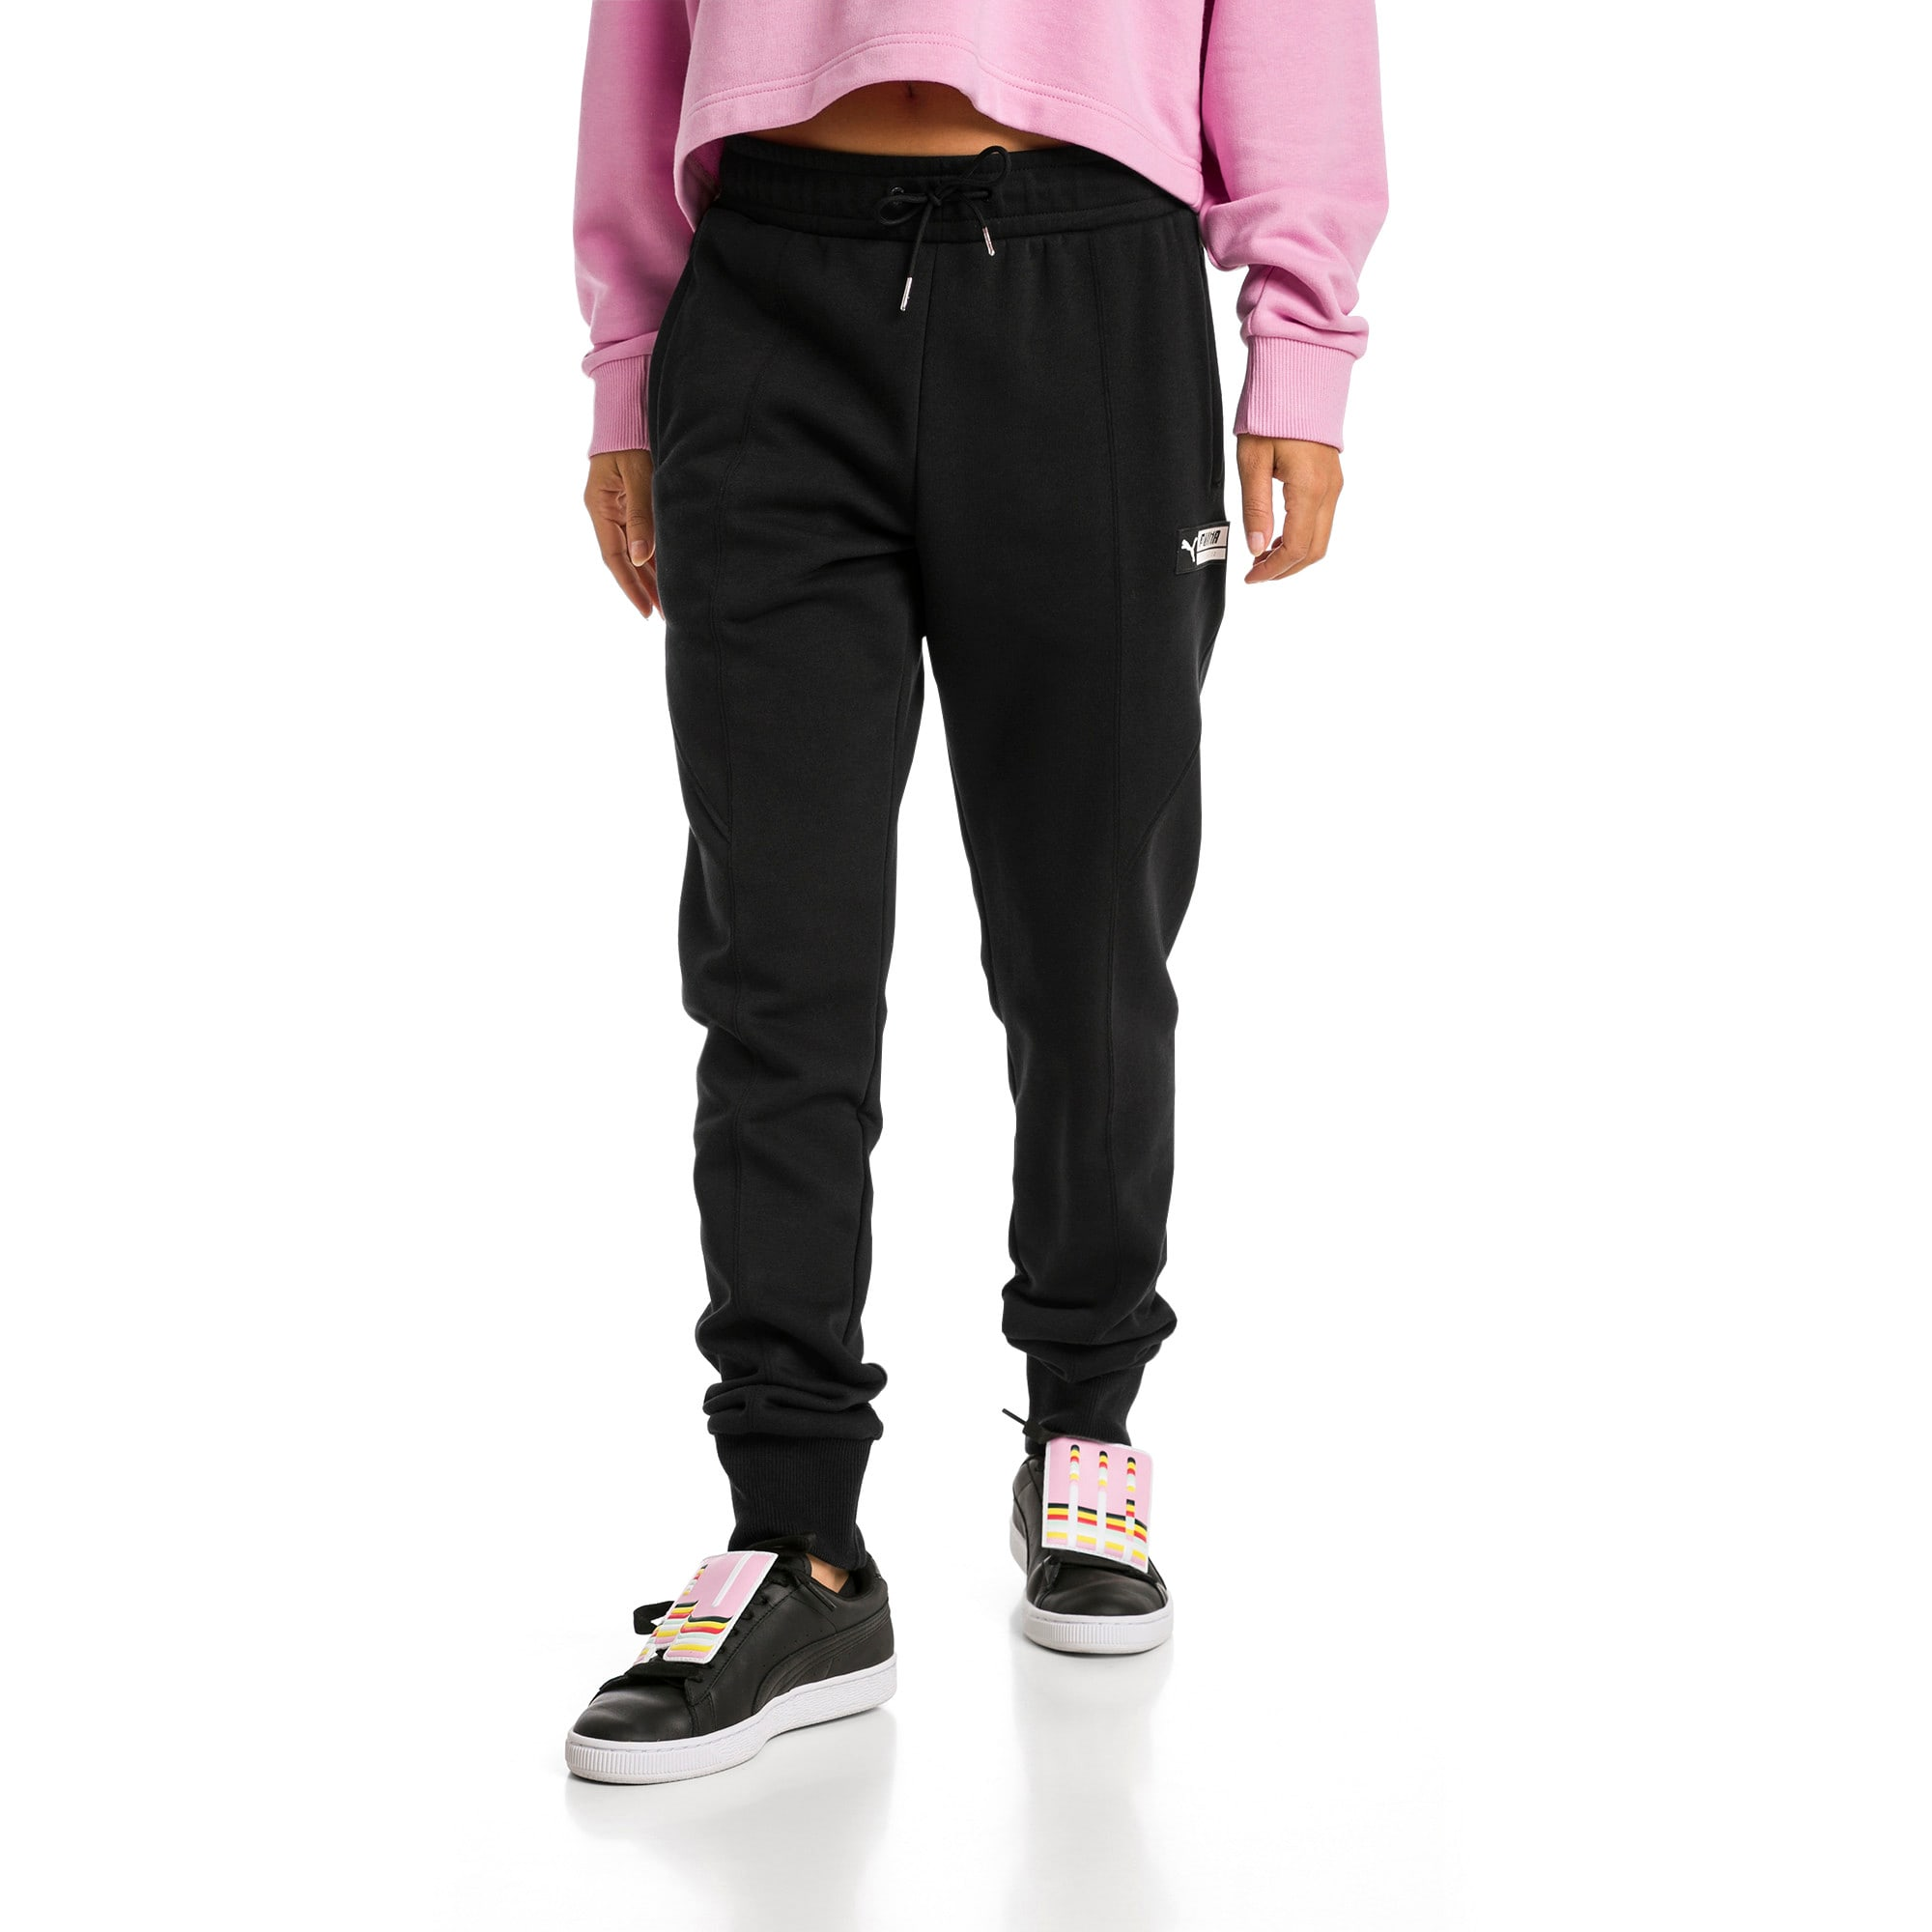 Thumbnail 1 of Trailblazer sweatpants voor dames, Puma Black, medium